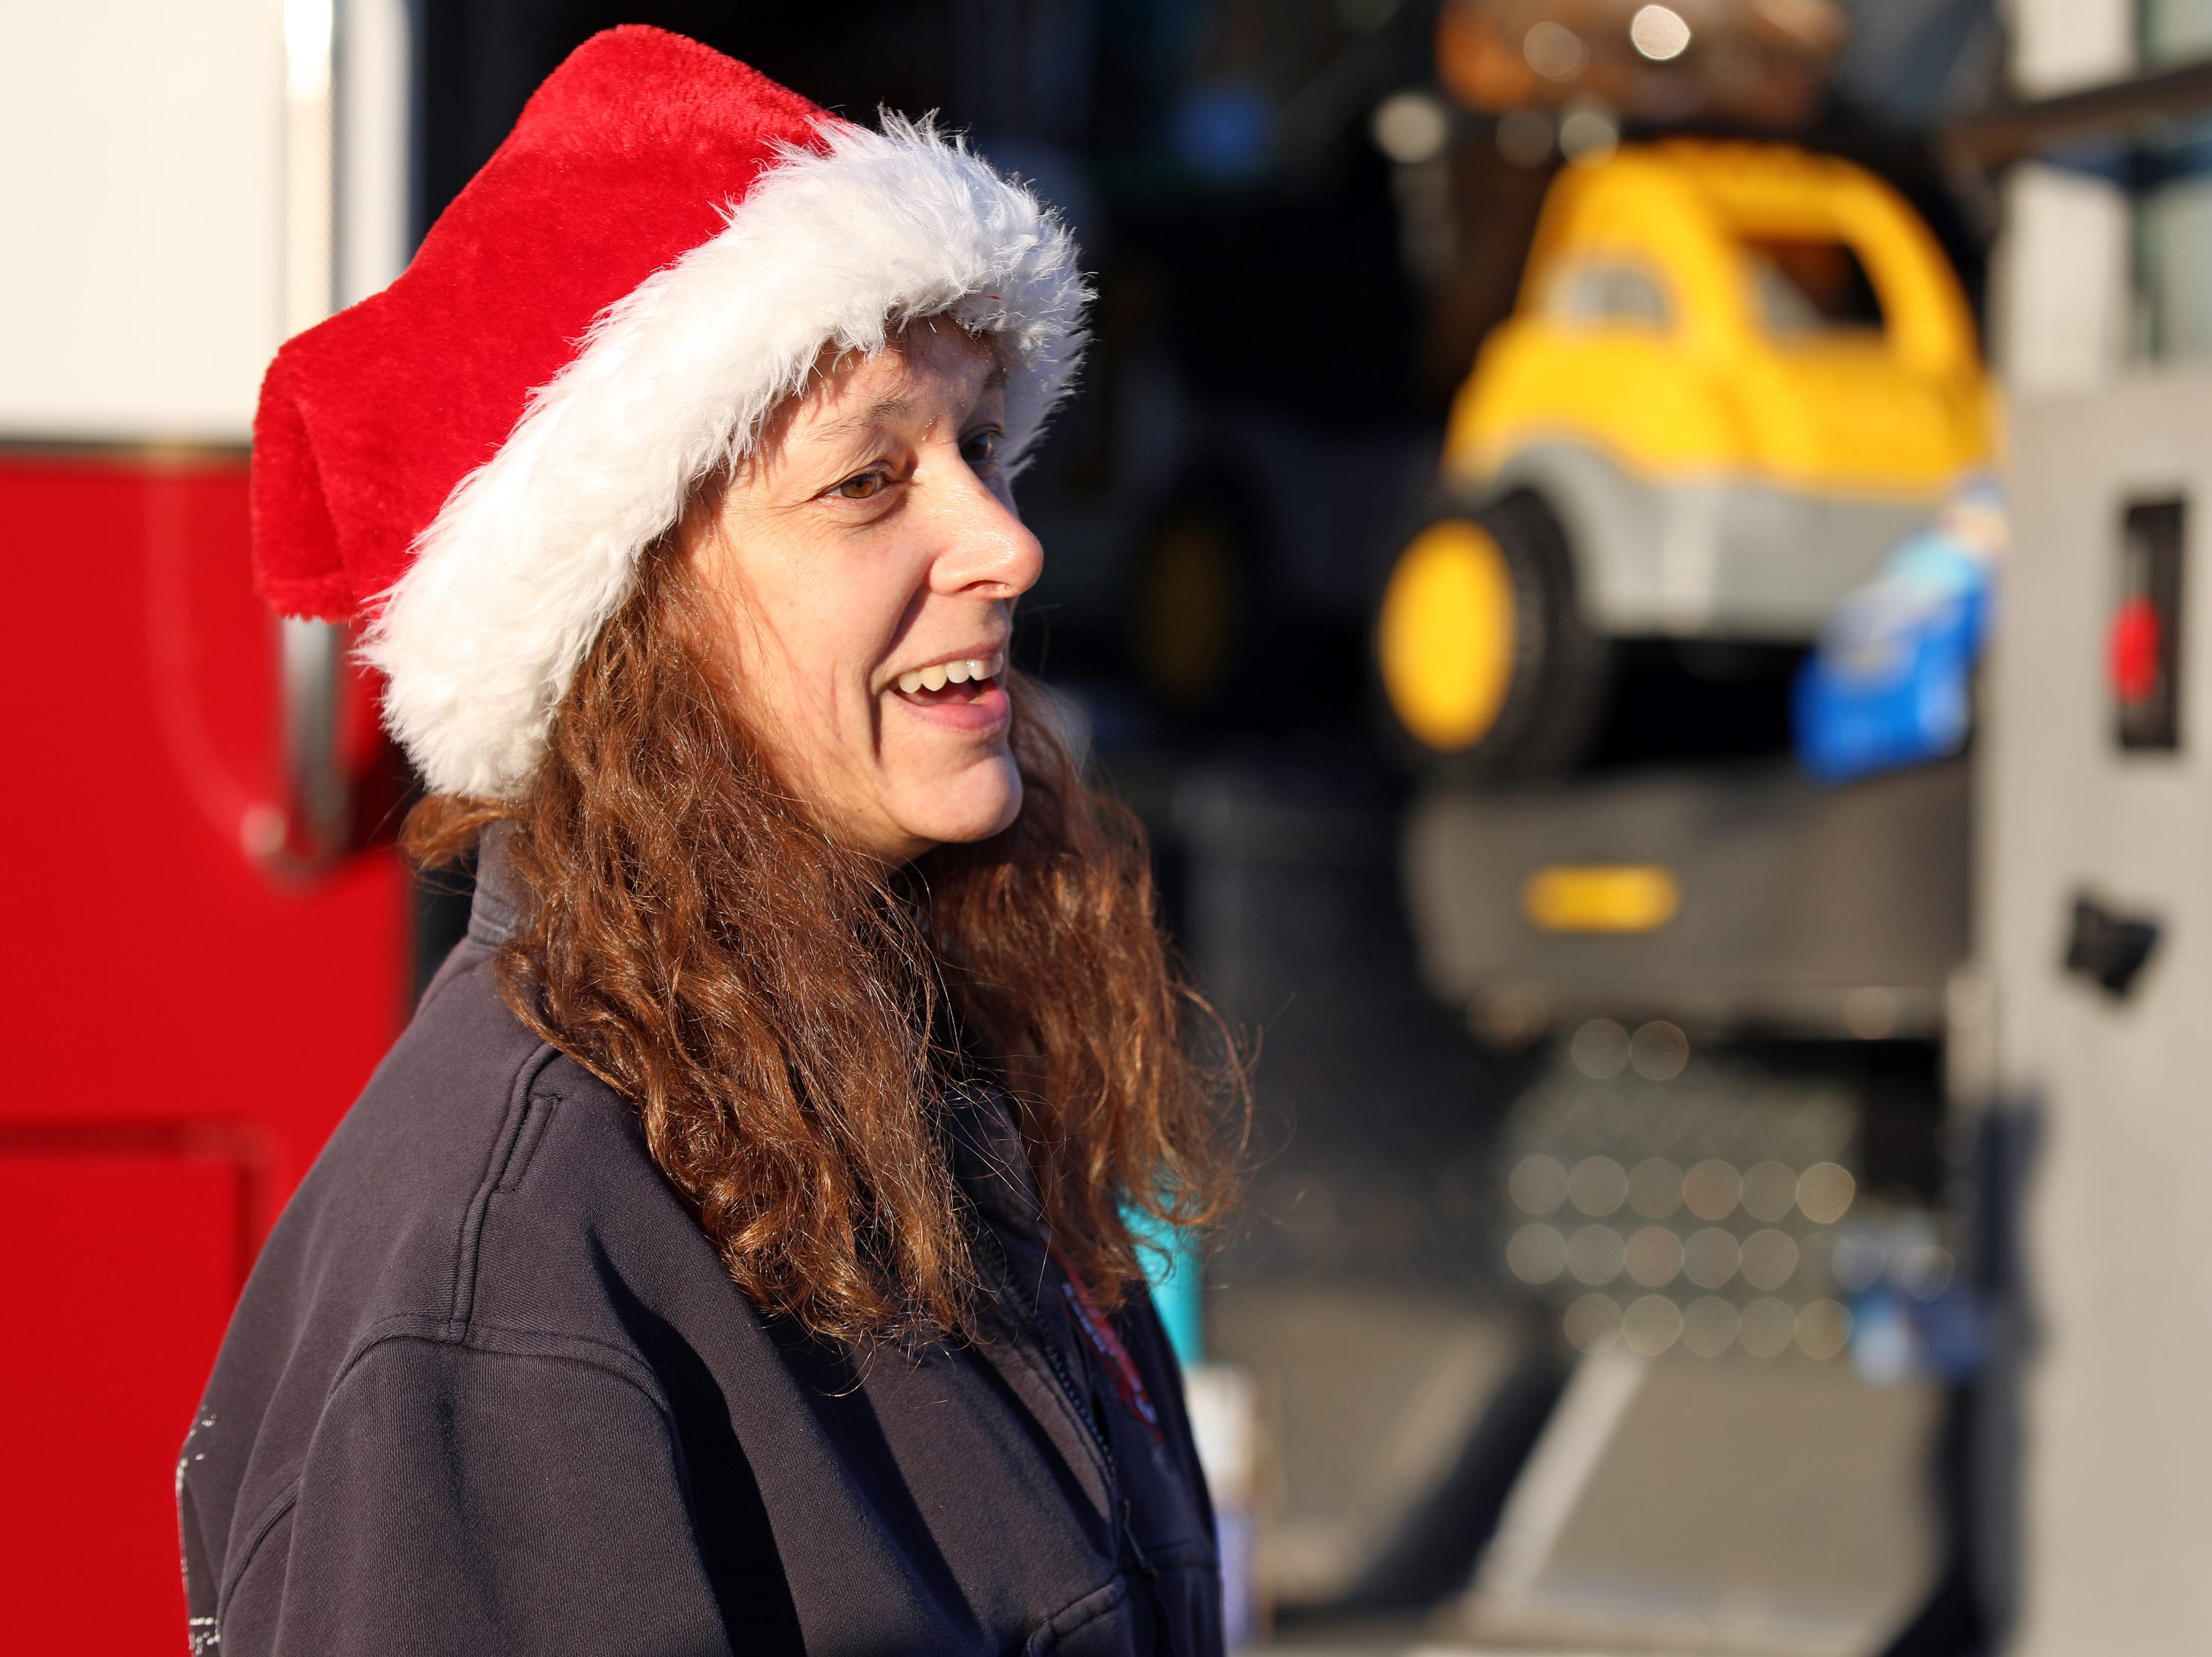 Karen Peters of the Ankeny Fire Department helps out as gifts are dropped off at Ankeny's fill the truck day during the U.S. Marine Corps Toys for Tots campaign at the Ankeny Fire Station Headquarters on Sunday, Dec. 16, 2018.